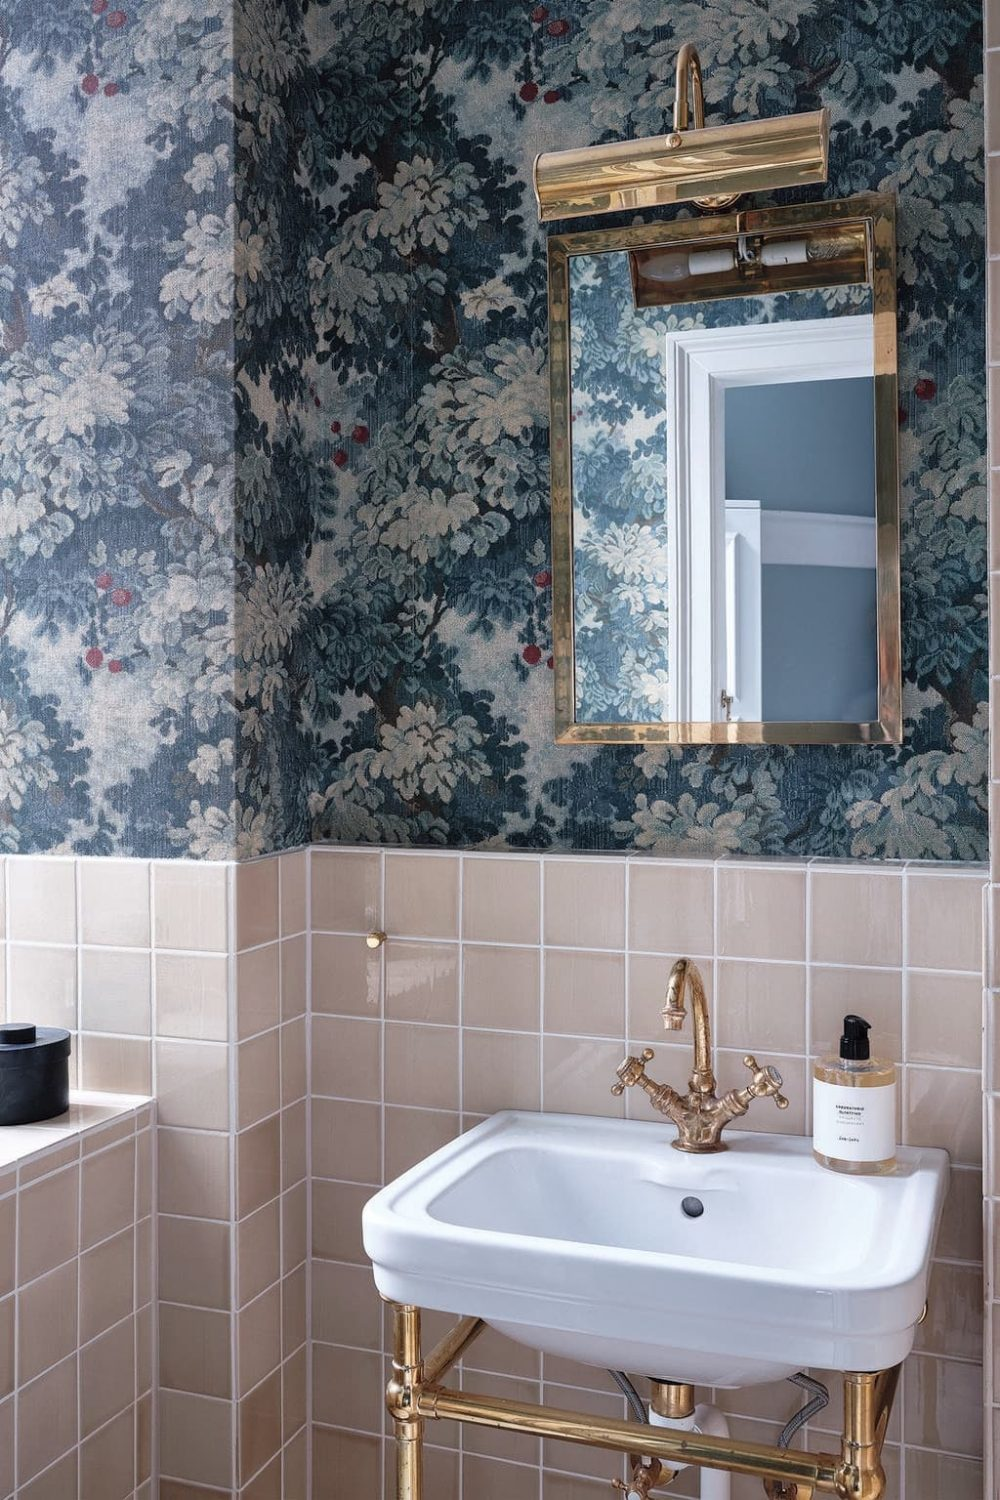 Wallpaper Trends: 5 Styles To Refresh Your Walls With